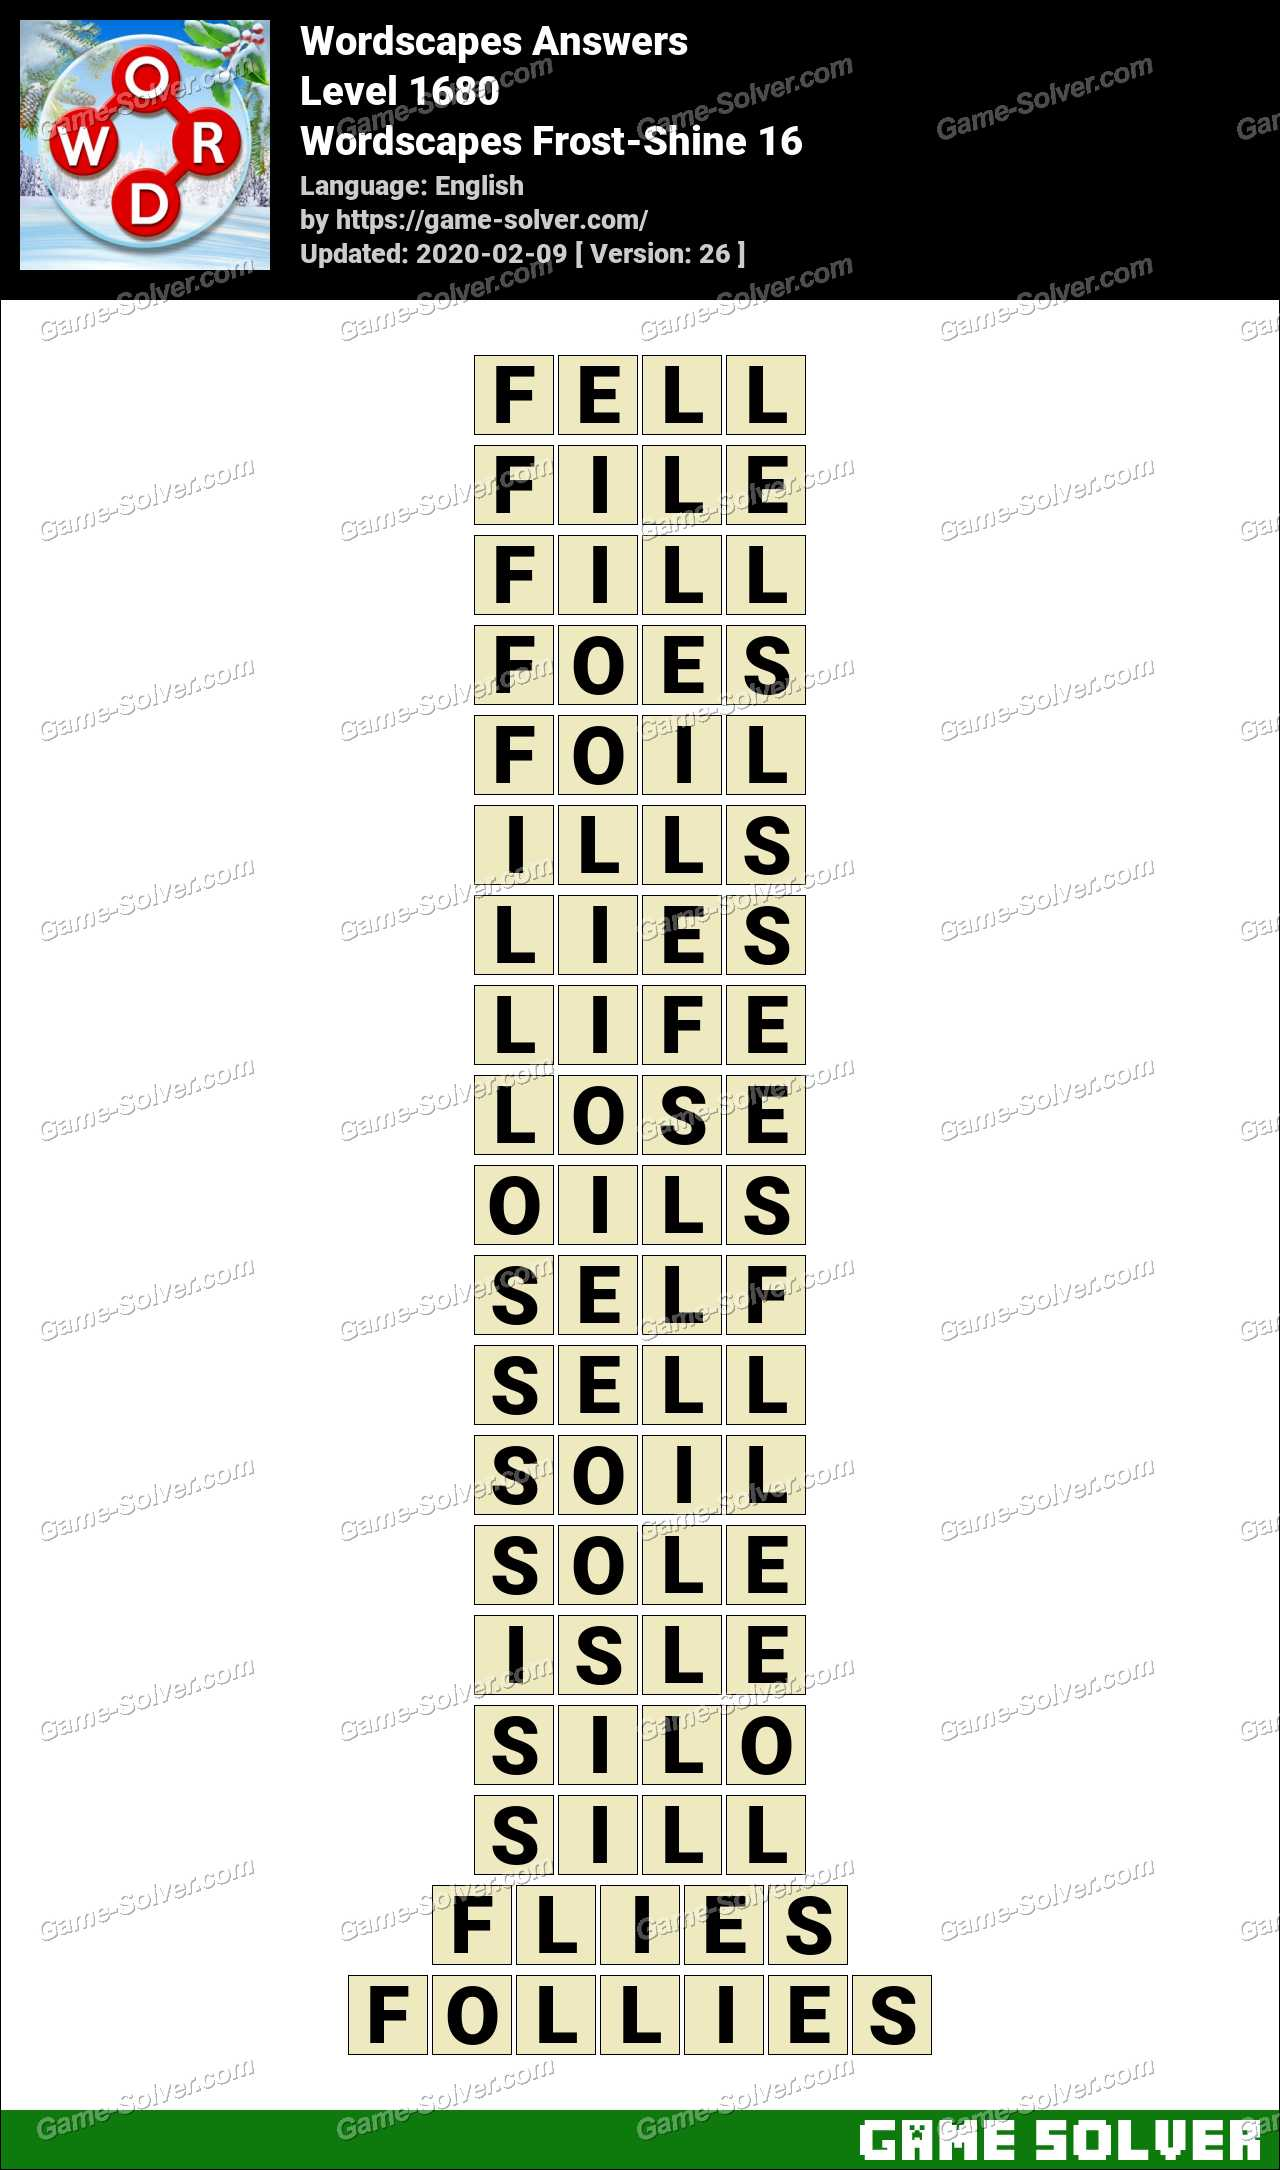 Wordscapes Frost-Shine 16 Answers